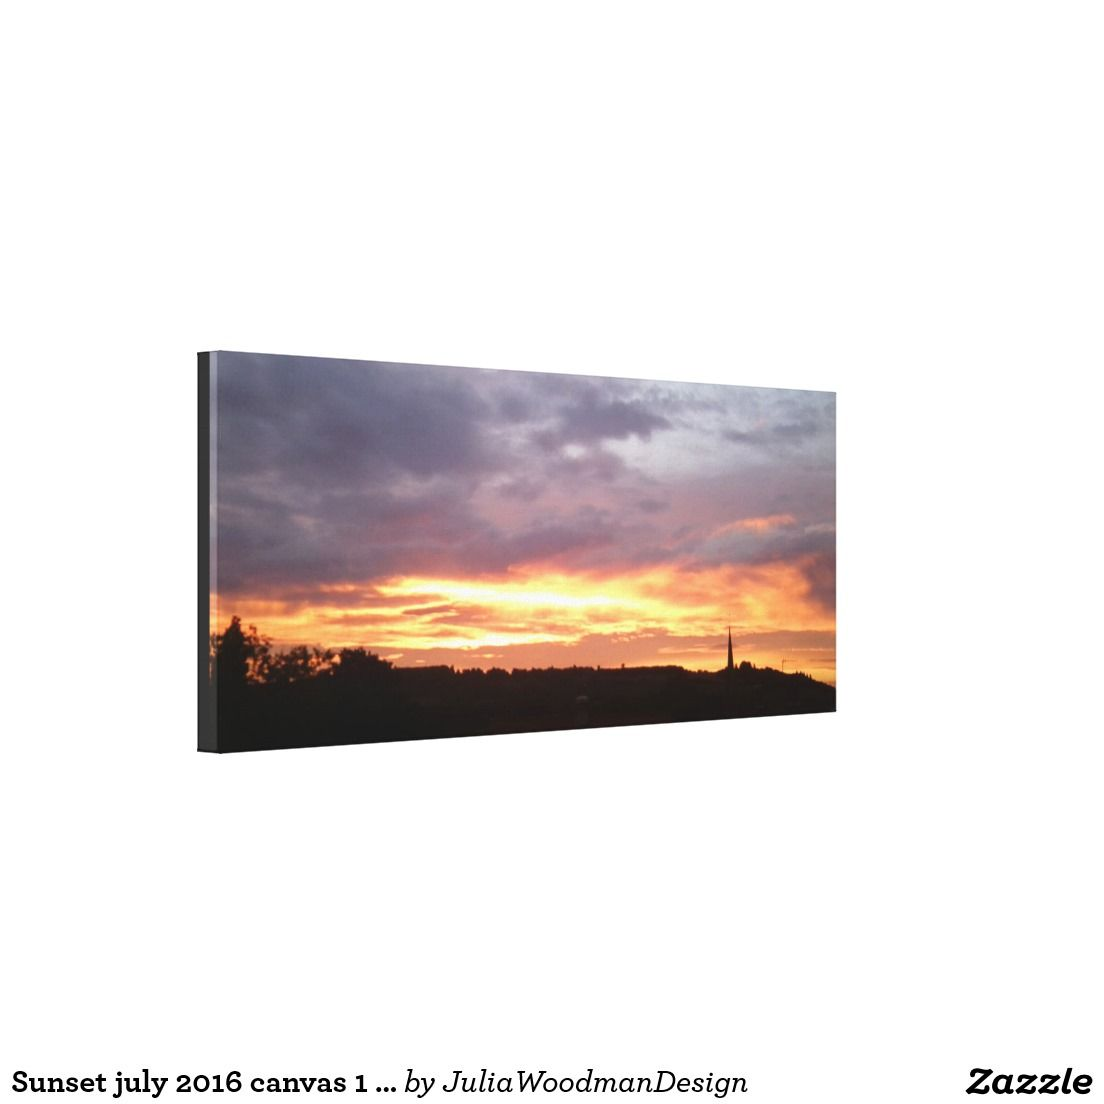 Sunset july 2016 canvas 1 Ranmore, Surrey, UK Stretched Canvas Prints